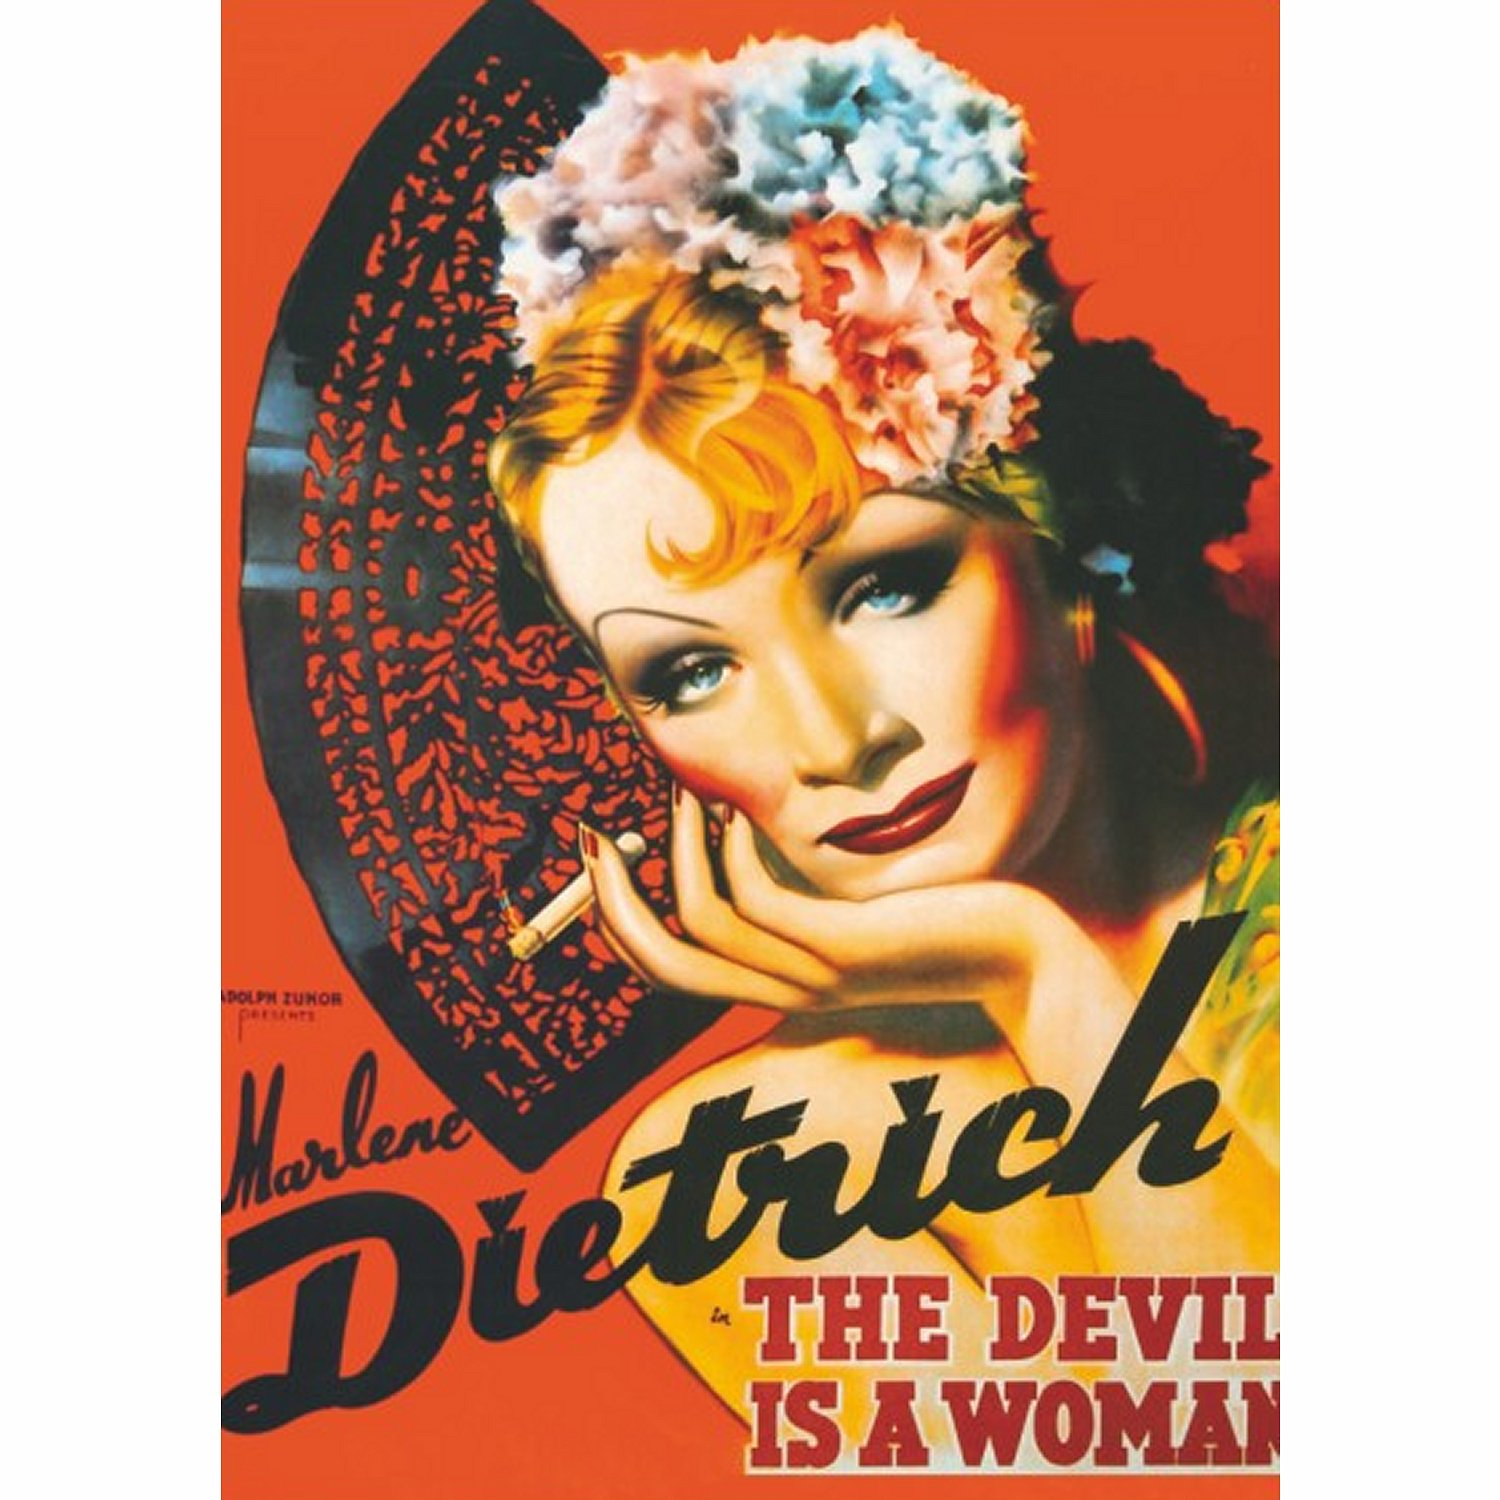 poster-vintage-marlene-dietrich-the-devil-is-a-woman